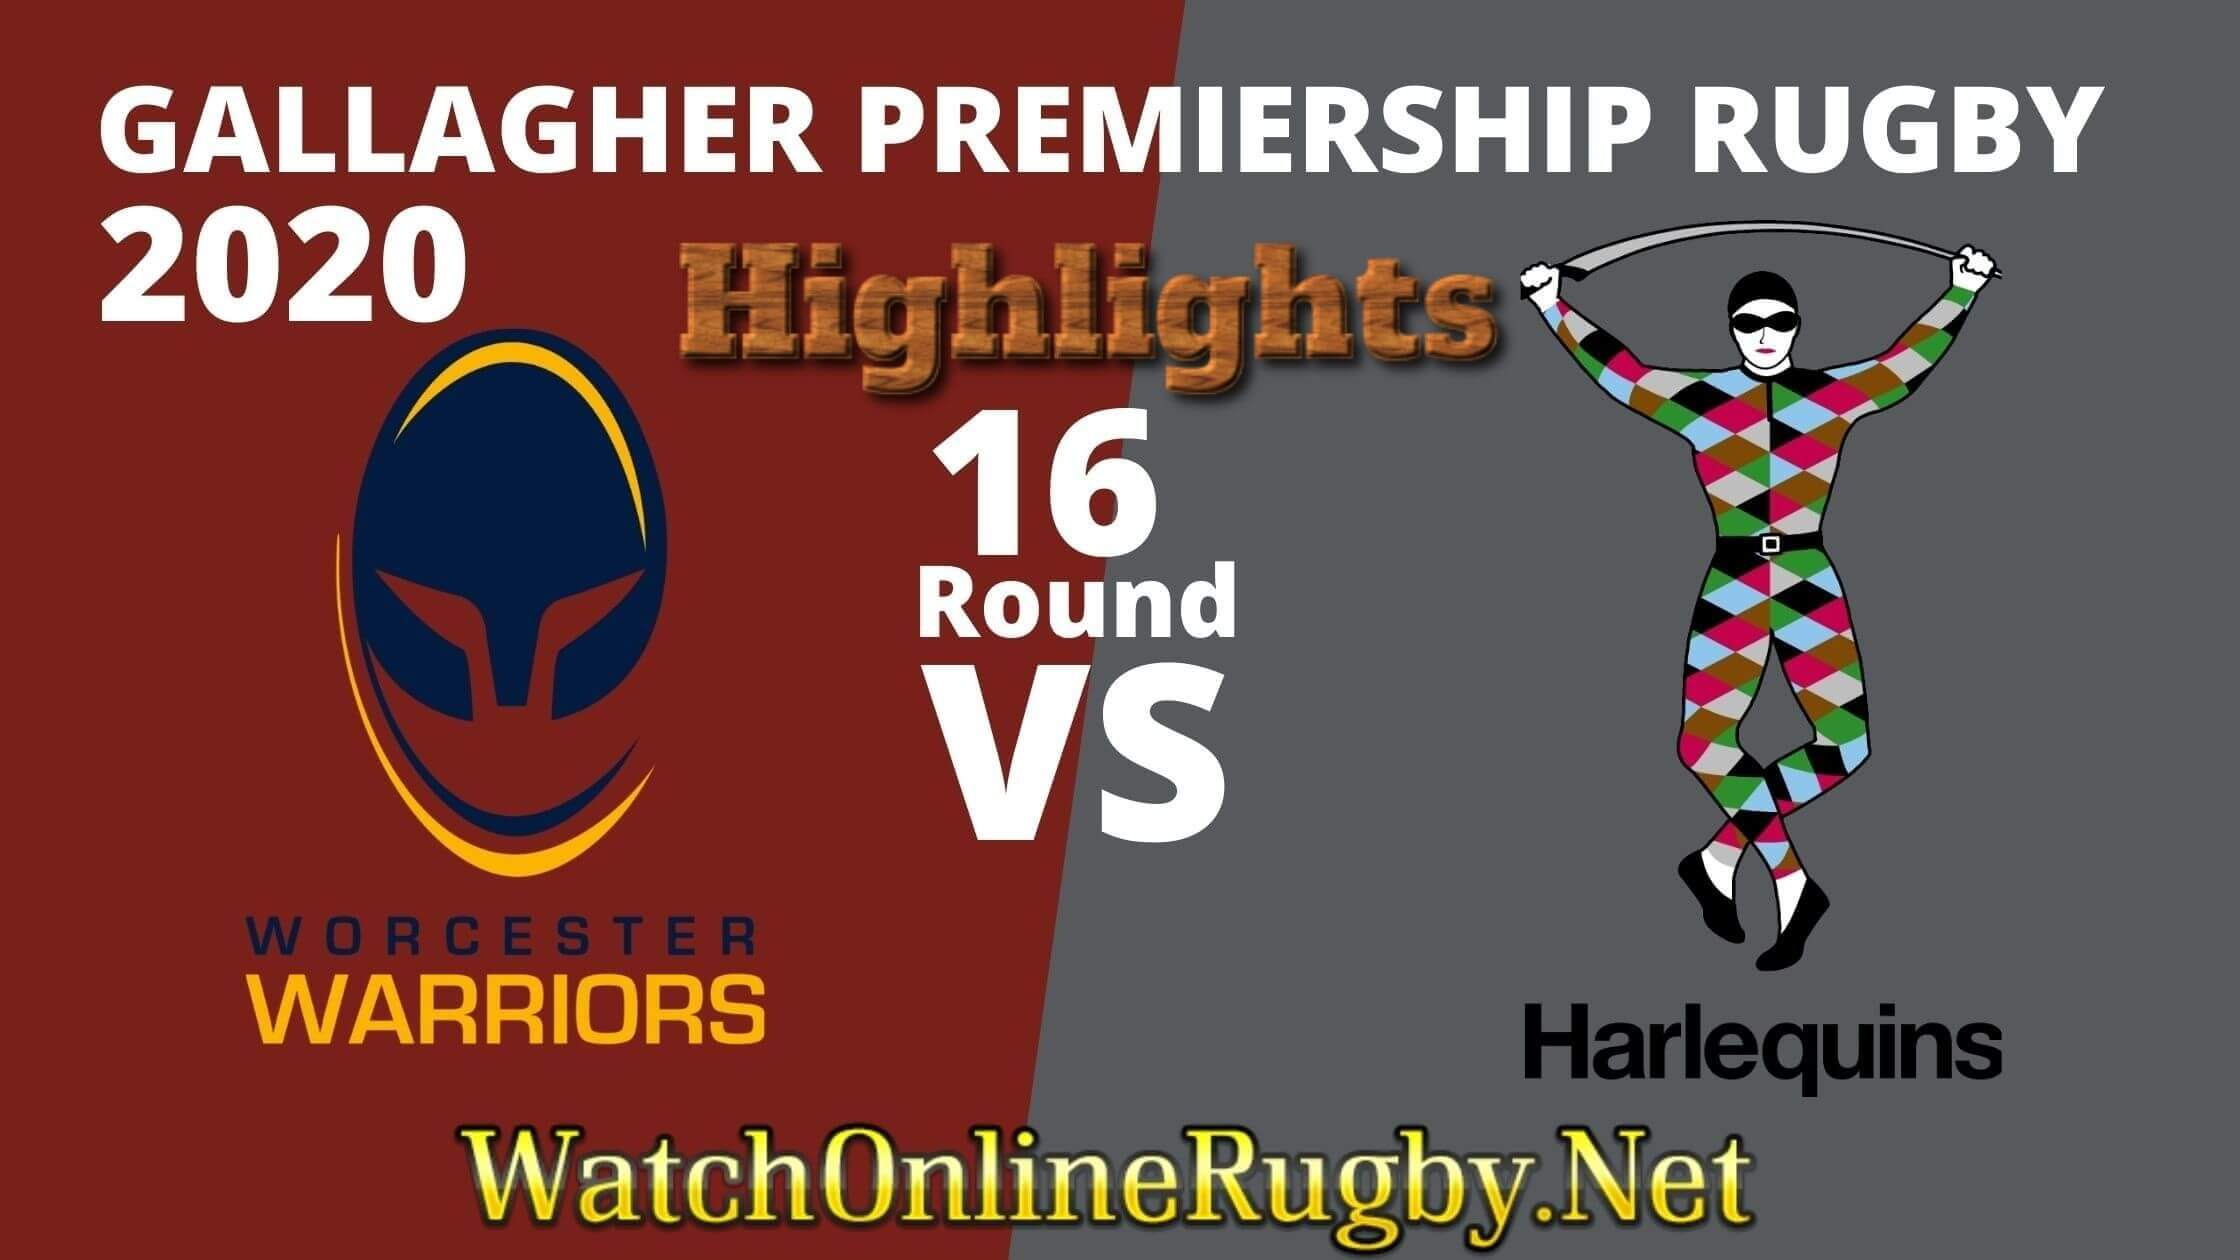 Worcester Warriors Vs Harlequins Highlights Rd 16